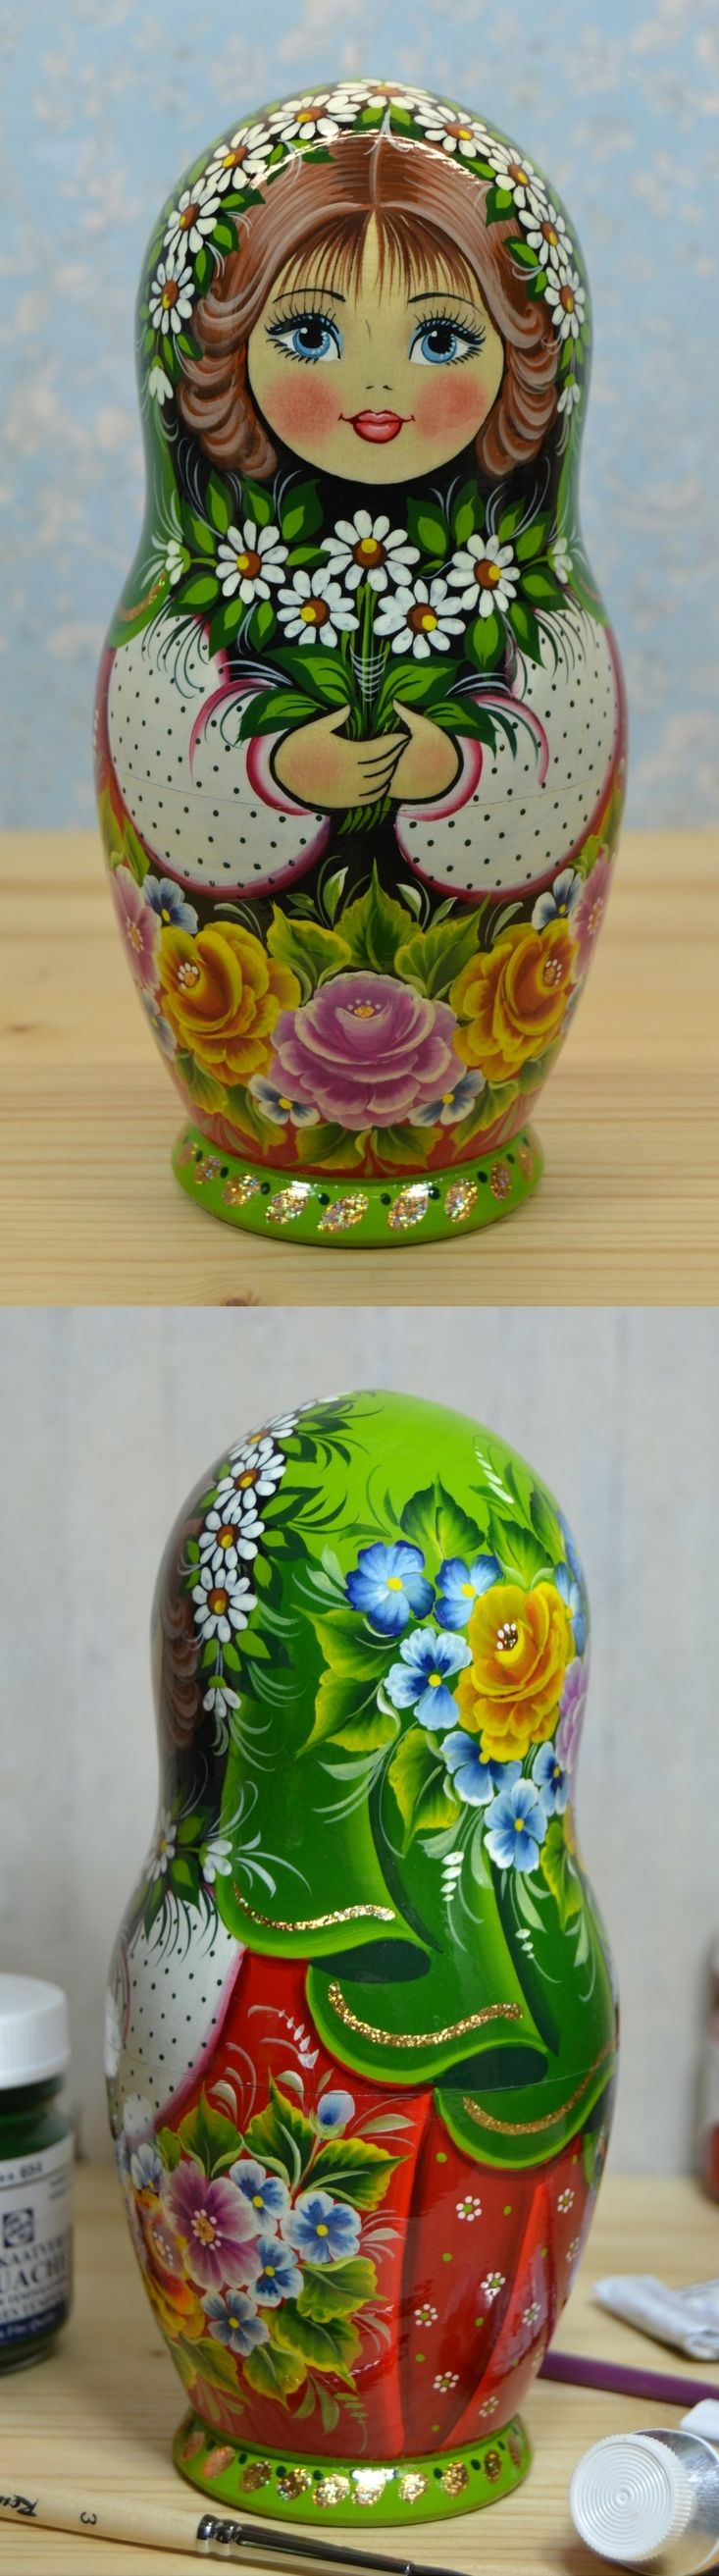 Wooden babushka doll in green decor with bunch of daisy flowers, hand painted by artist Valentina Partanen. Find more gorgeous nesting dolls at: www.bestrussiandolls.etsy.com